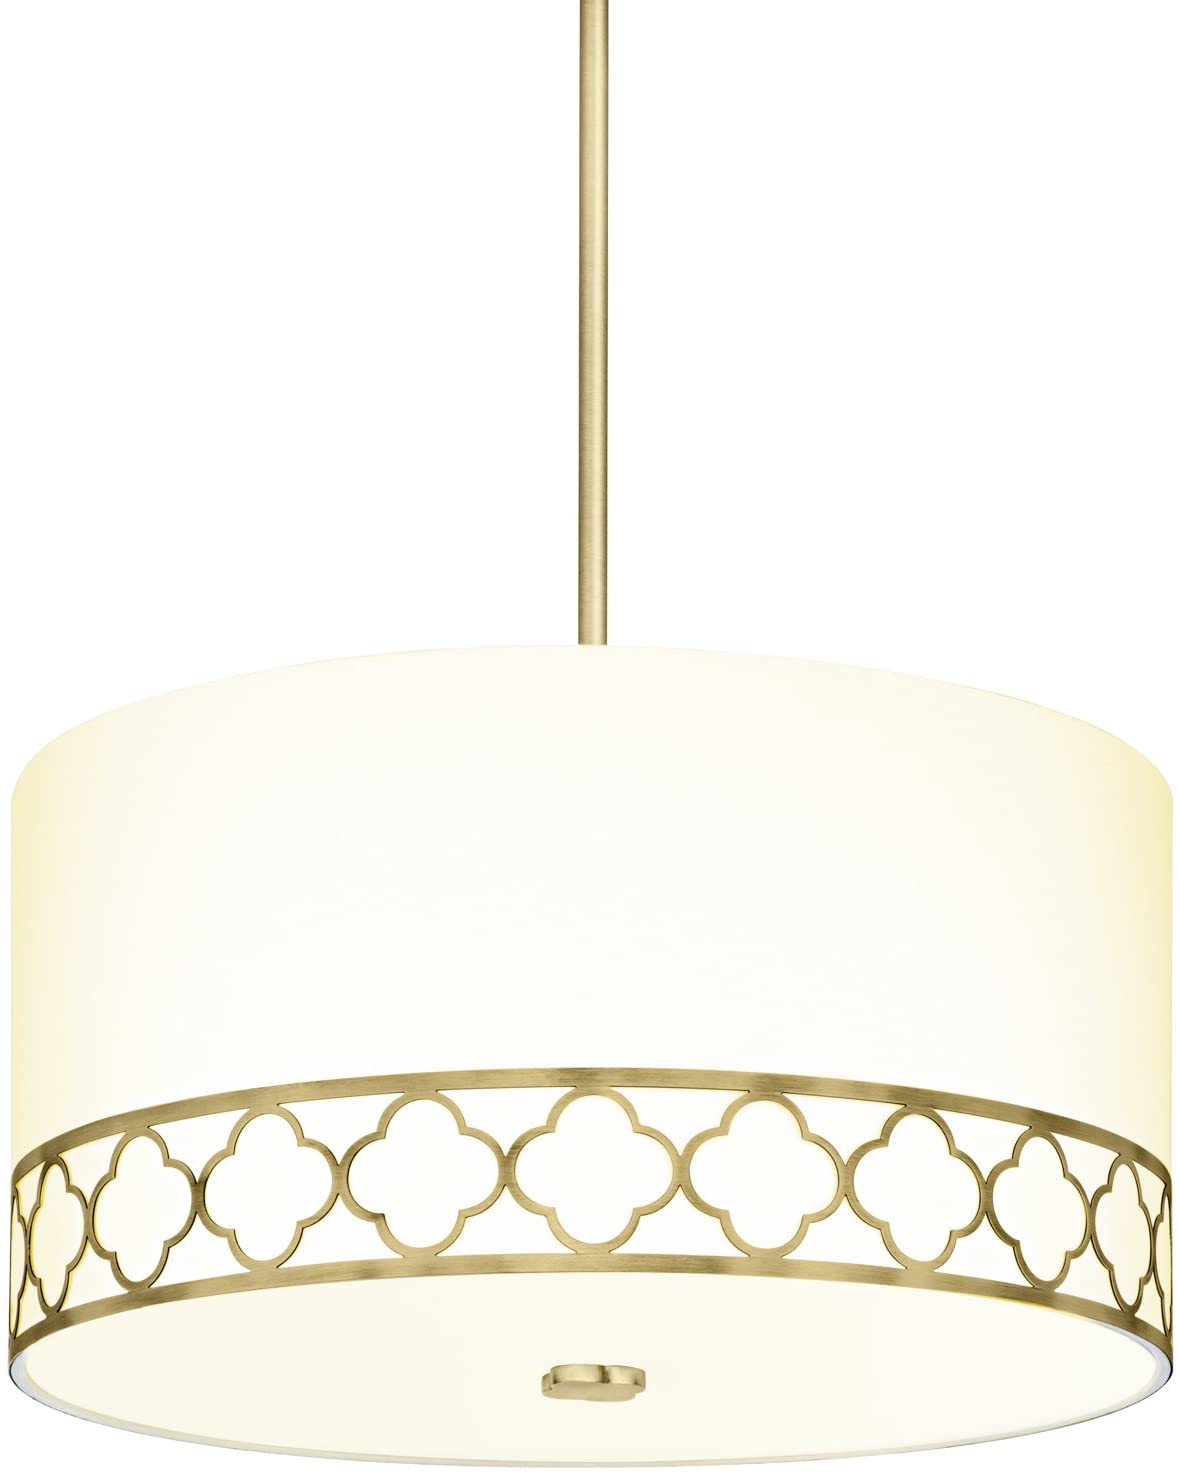 Large Fabric Linen Drum Chandelier - 18 Inch 4-Light Ceiling Fixture with Scalloped Brass Metal Design and Glass Diffuser